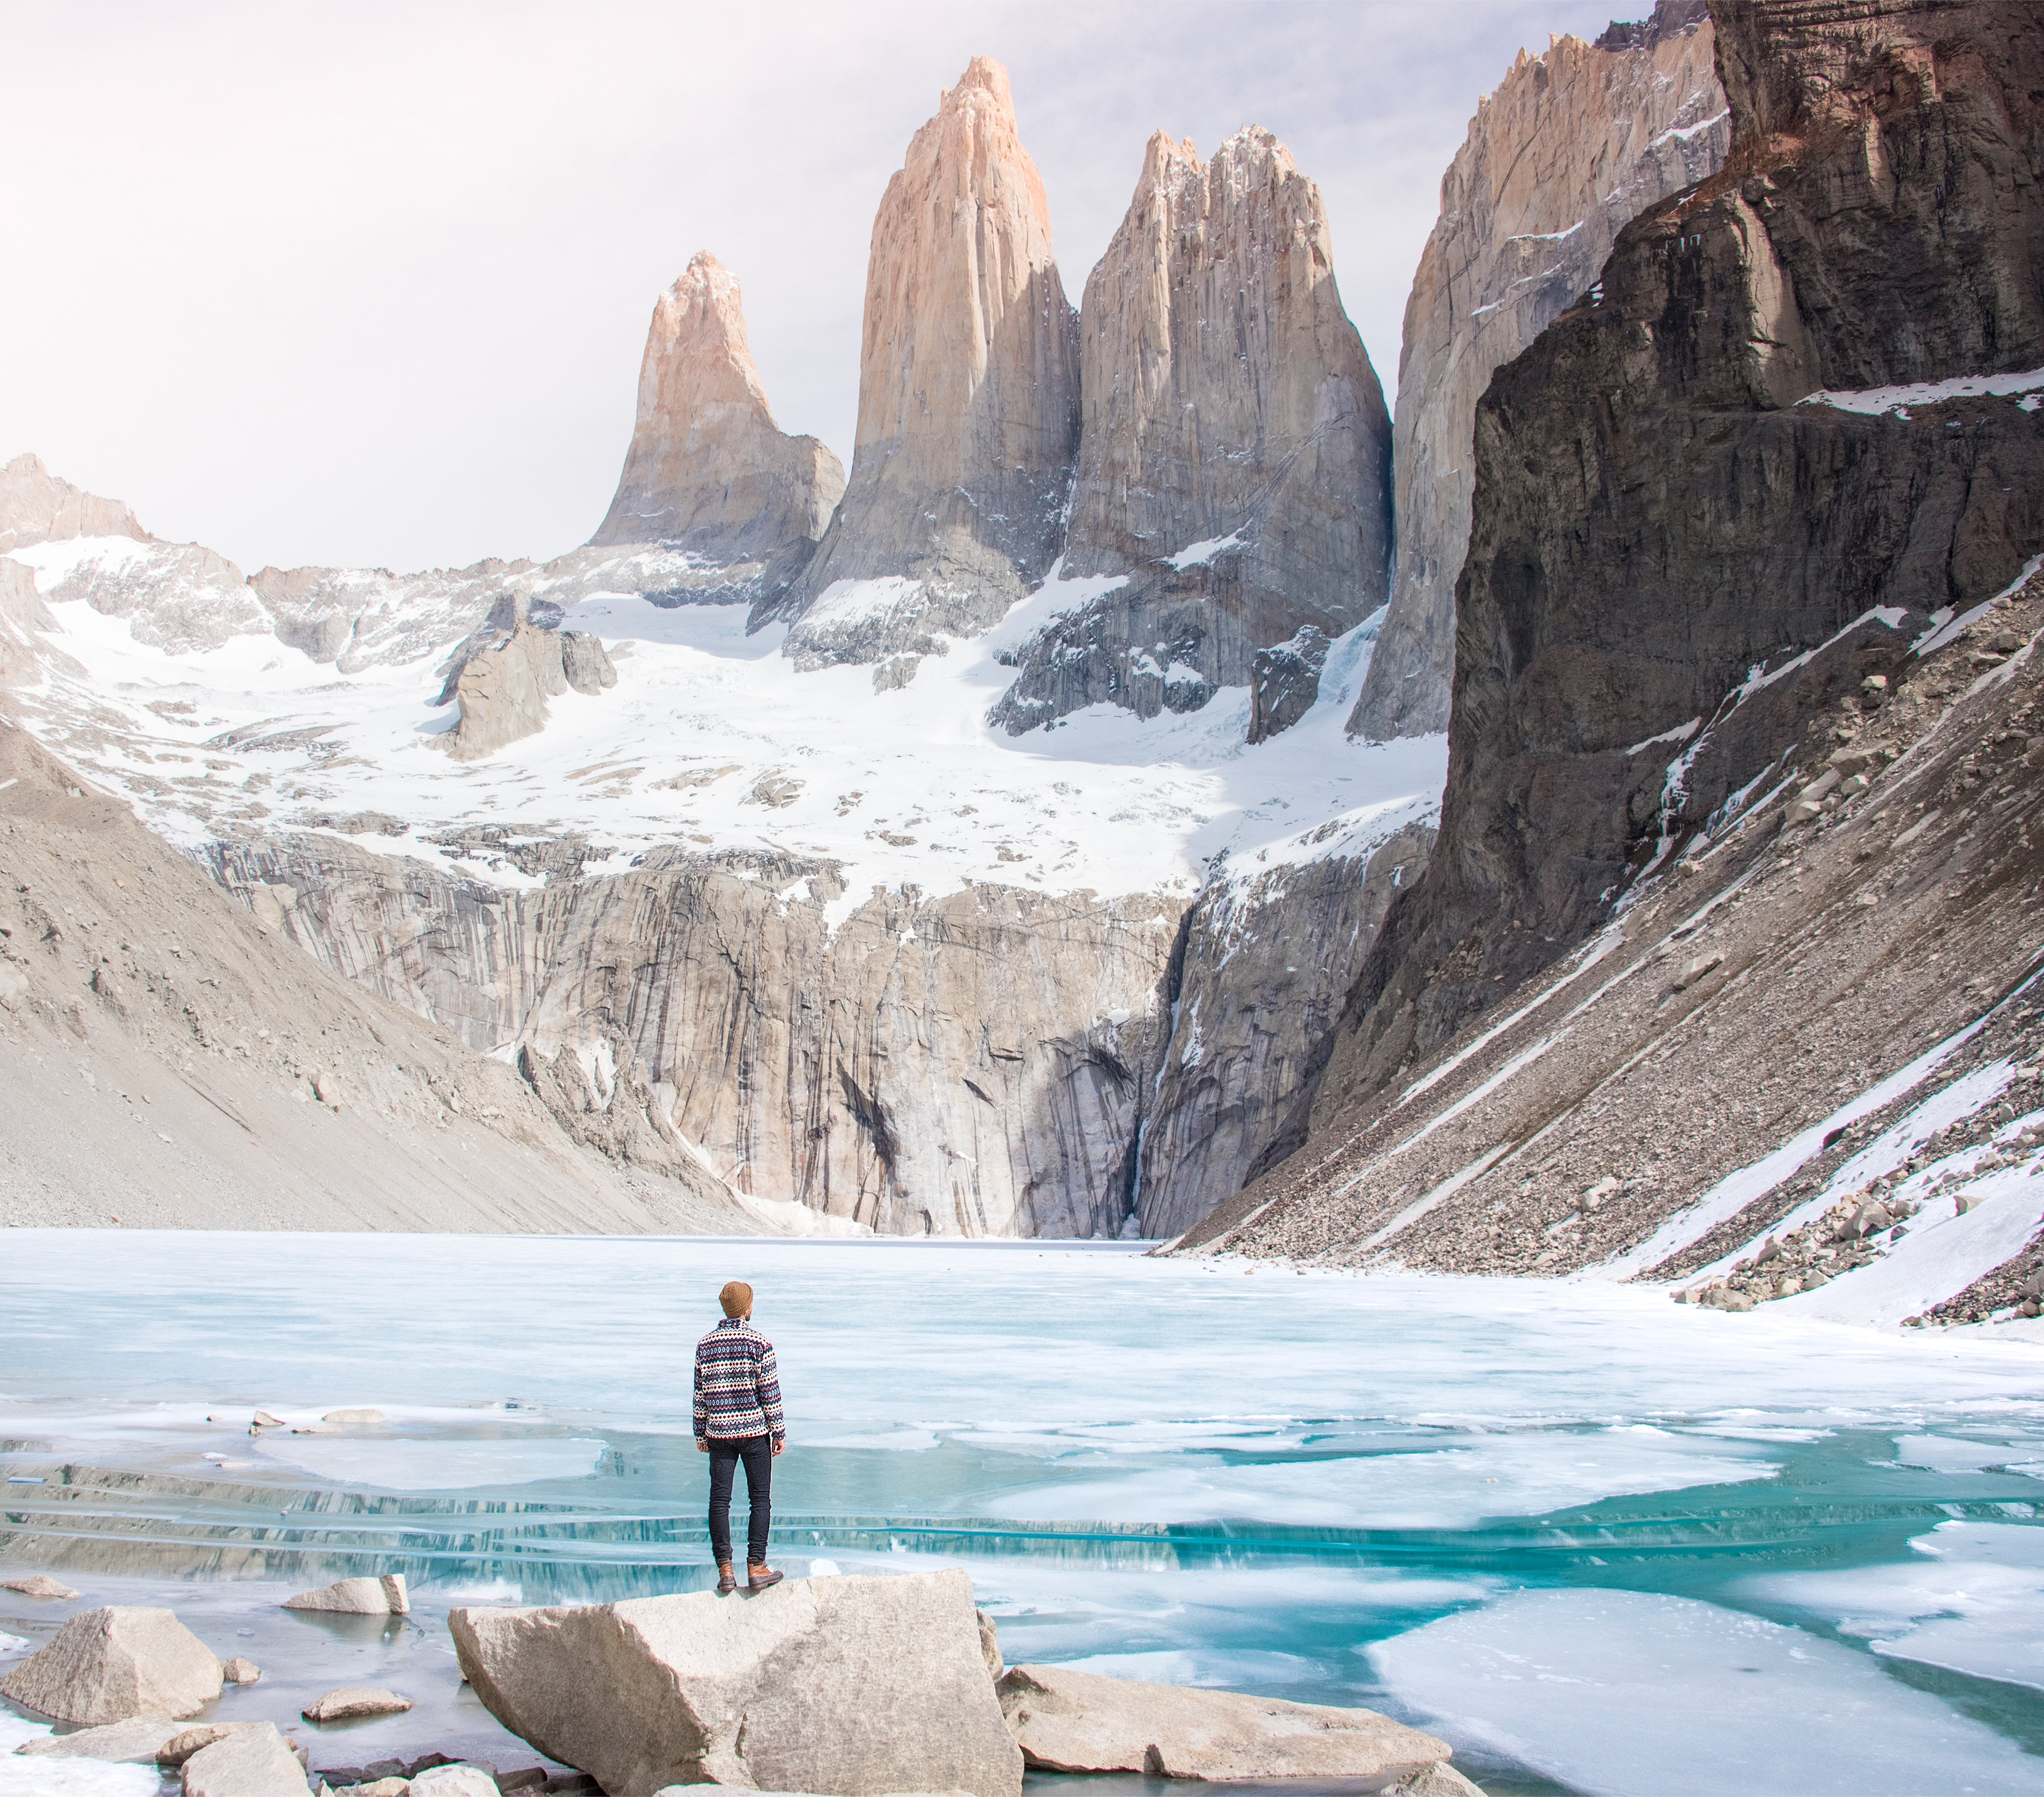 Person standing by an icy mountain lake.